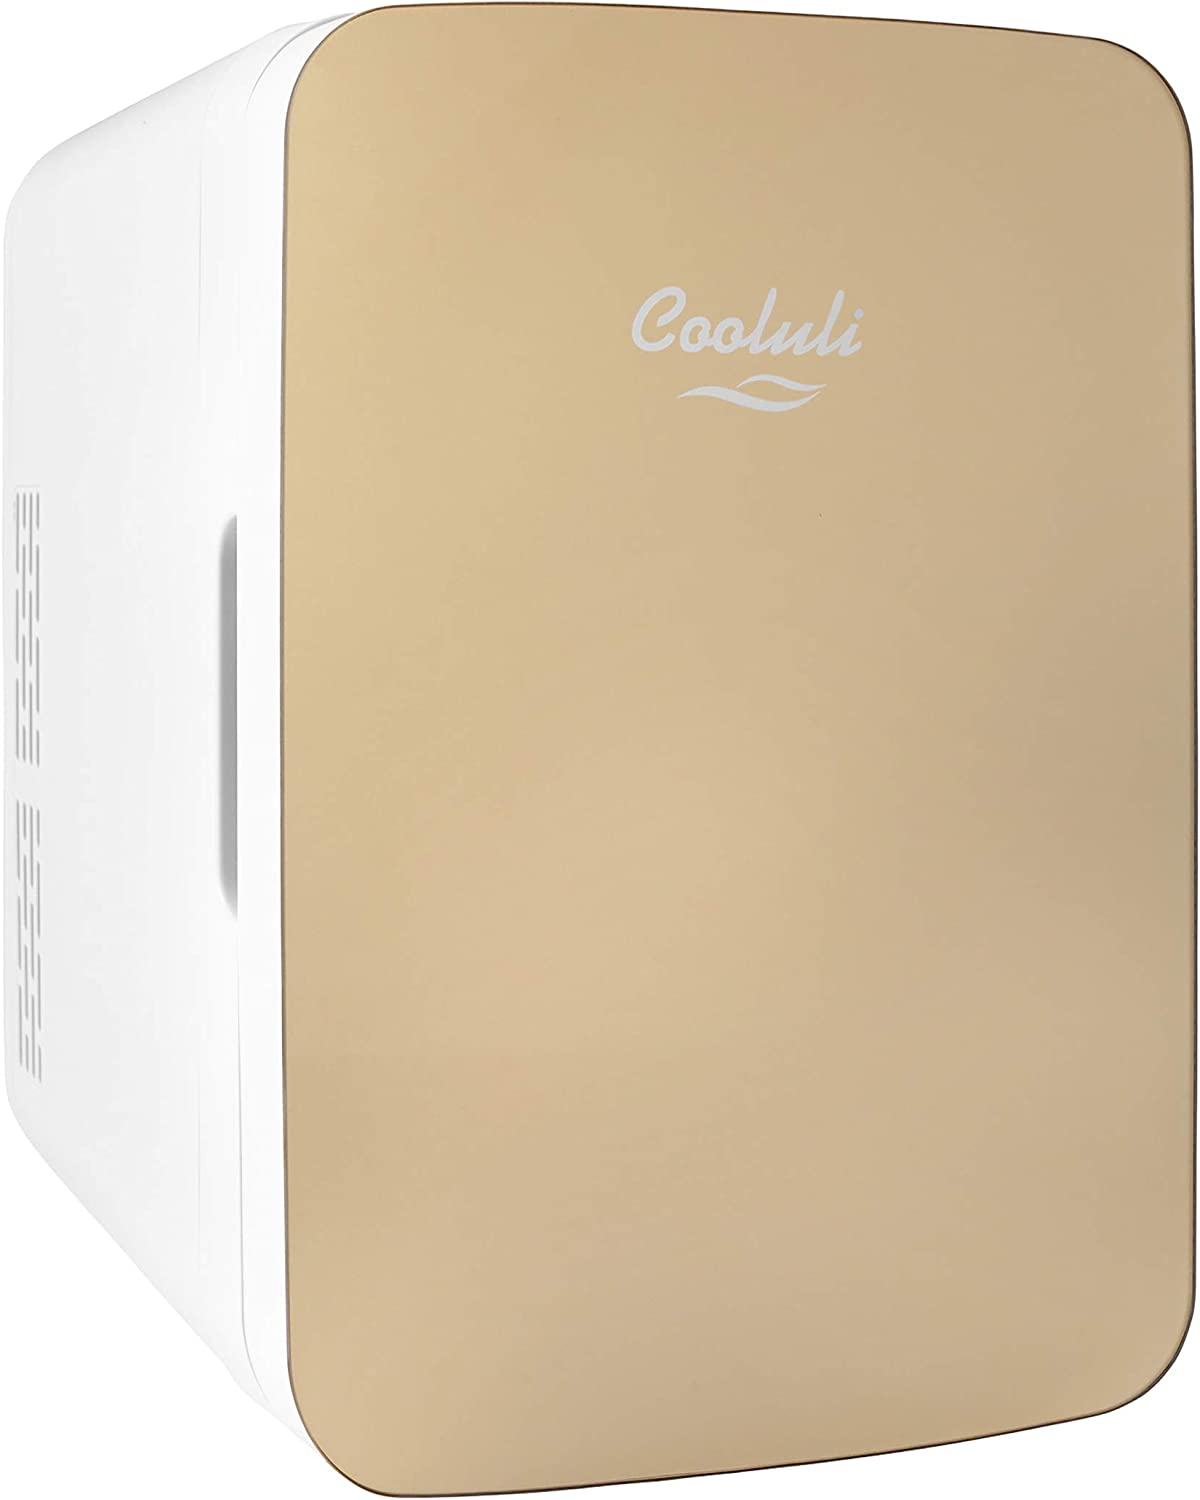 Cooluli Infinity Gold 10 Liter Compact Portable Cooler Warmer Mini Fridge for Bedroom, Office, Dorm, Car - Great for Skincare & Cosmetics